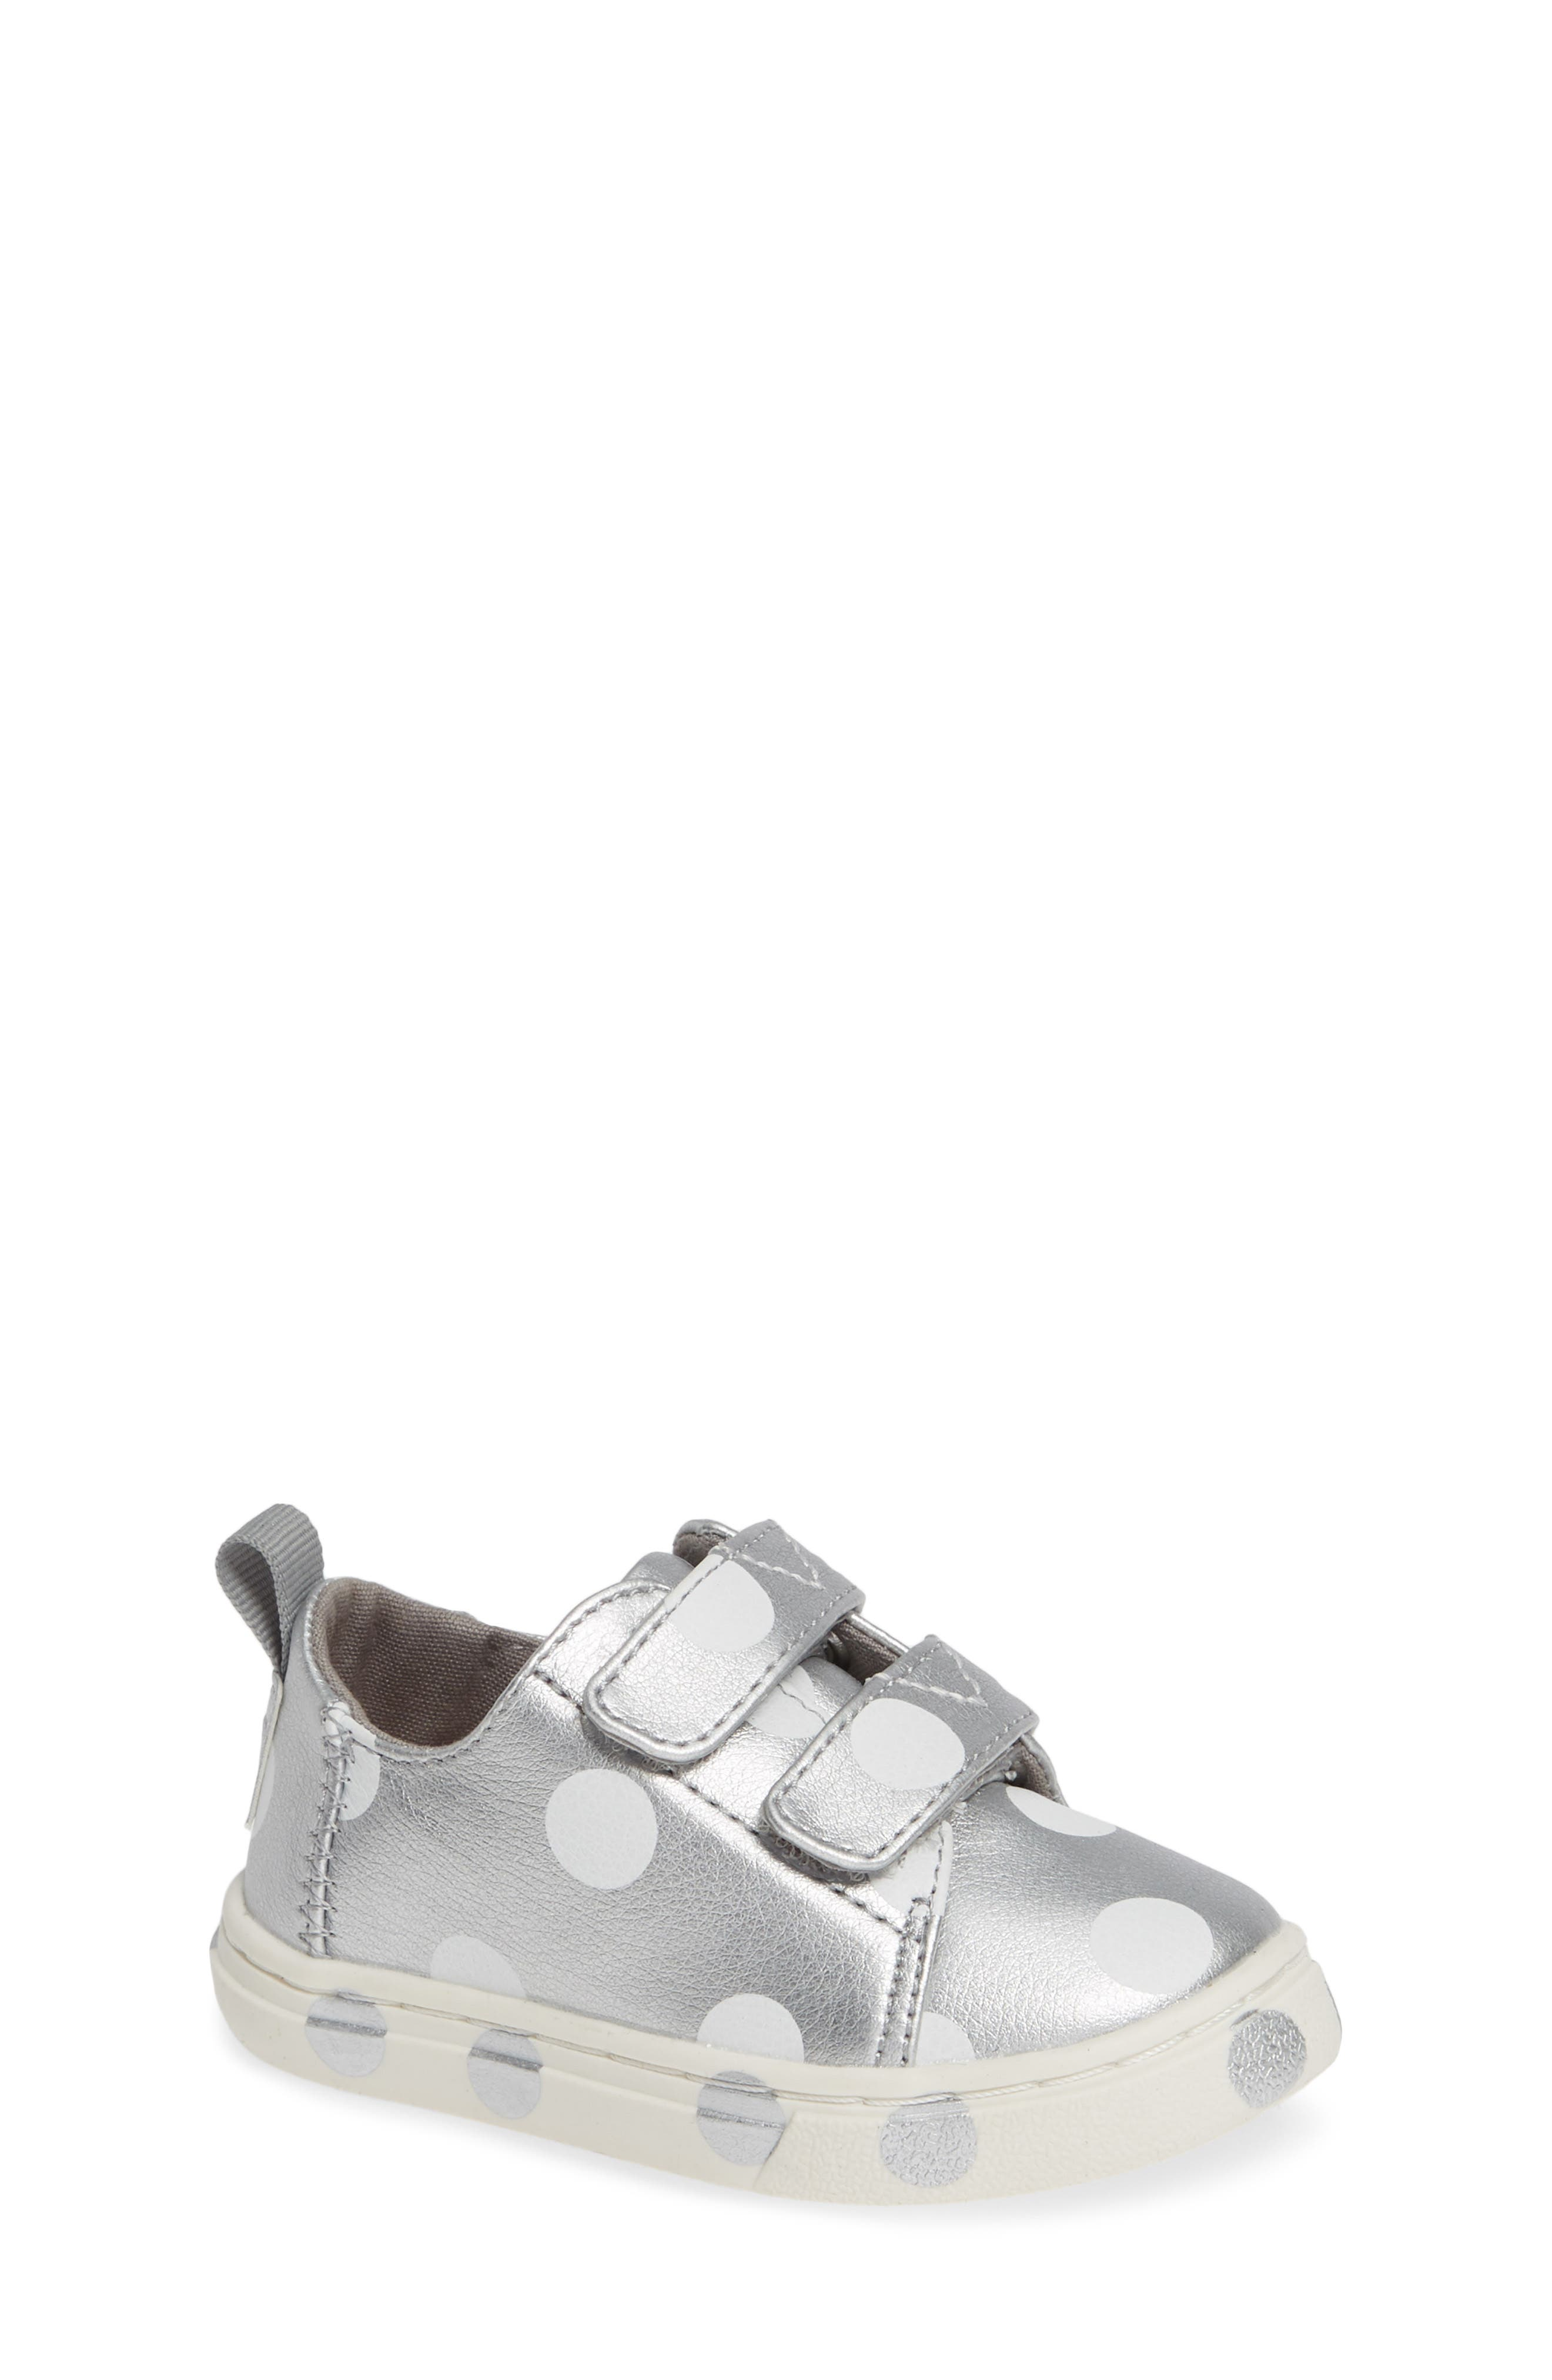 Lenny Sneaker,                             Main thumbnail 1, color,                             SILVER SYNTHETIC LEATHER DOTS